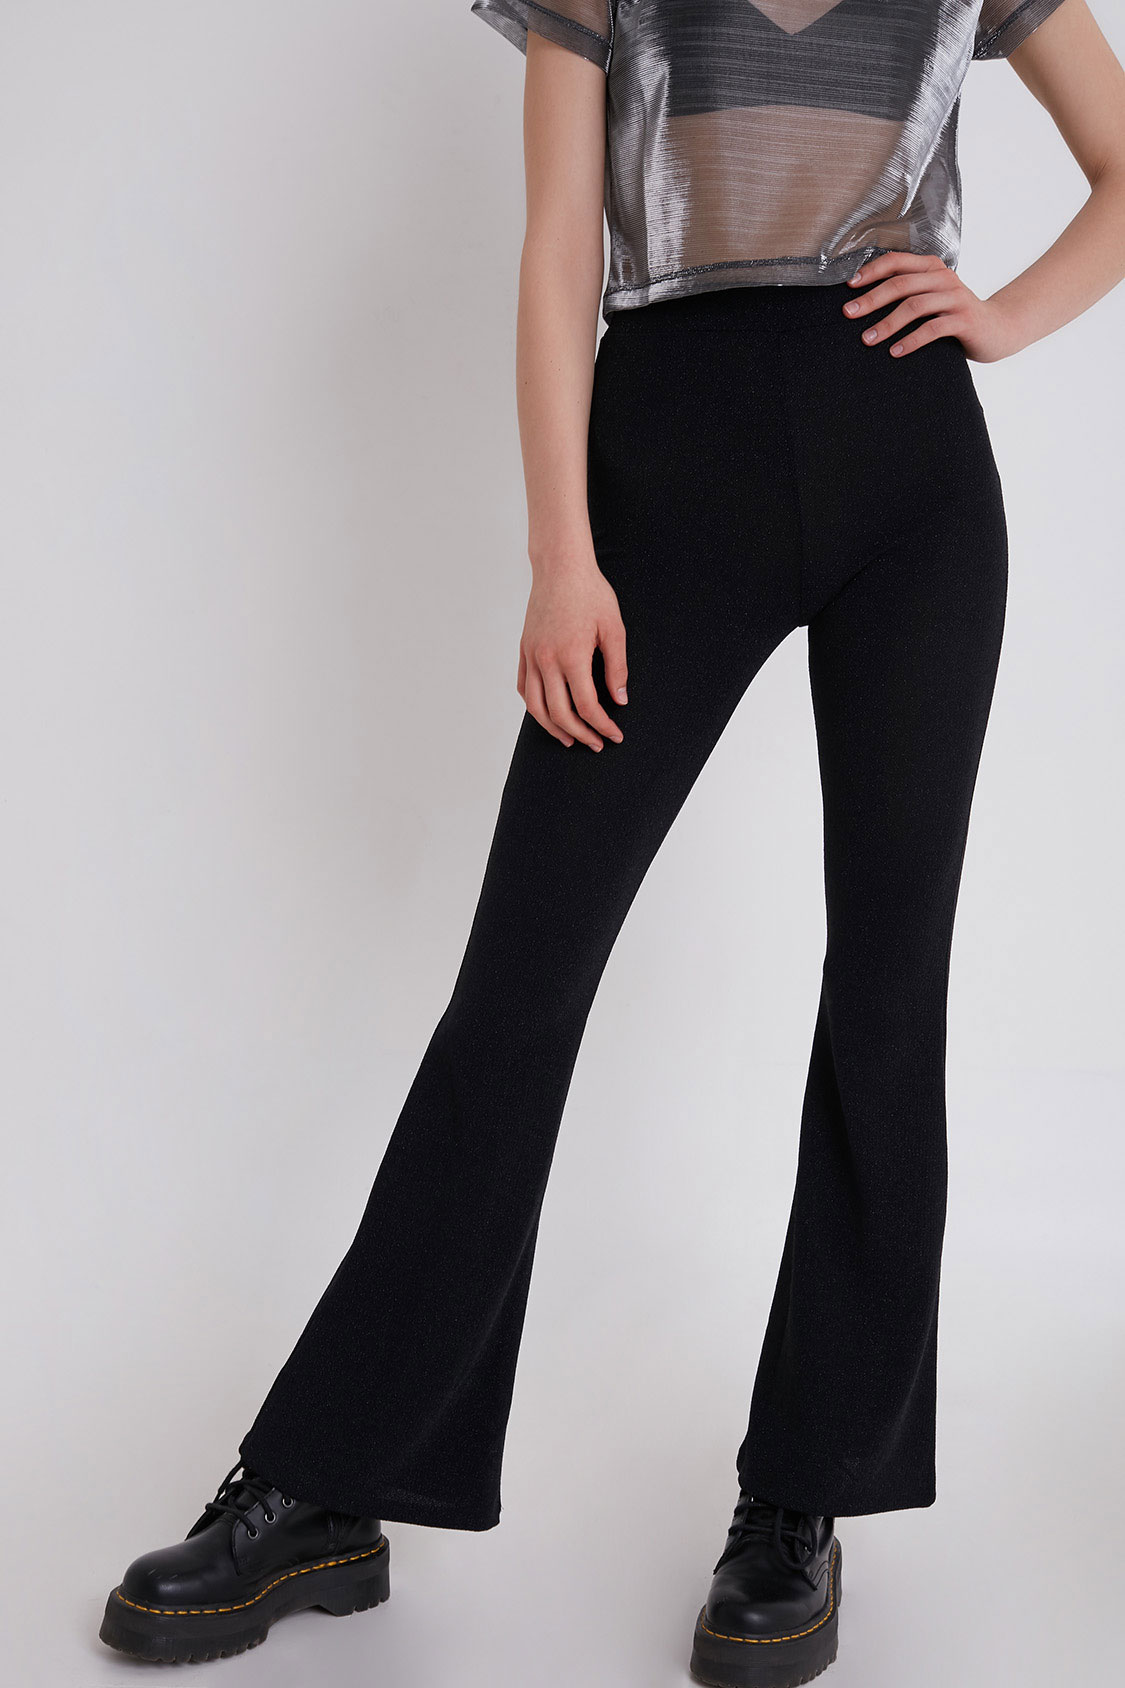 bbb86574db08bc Pants - Collection